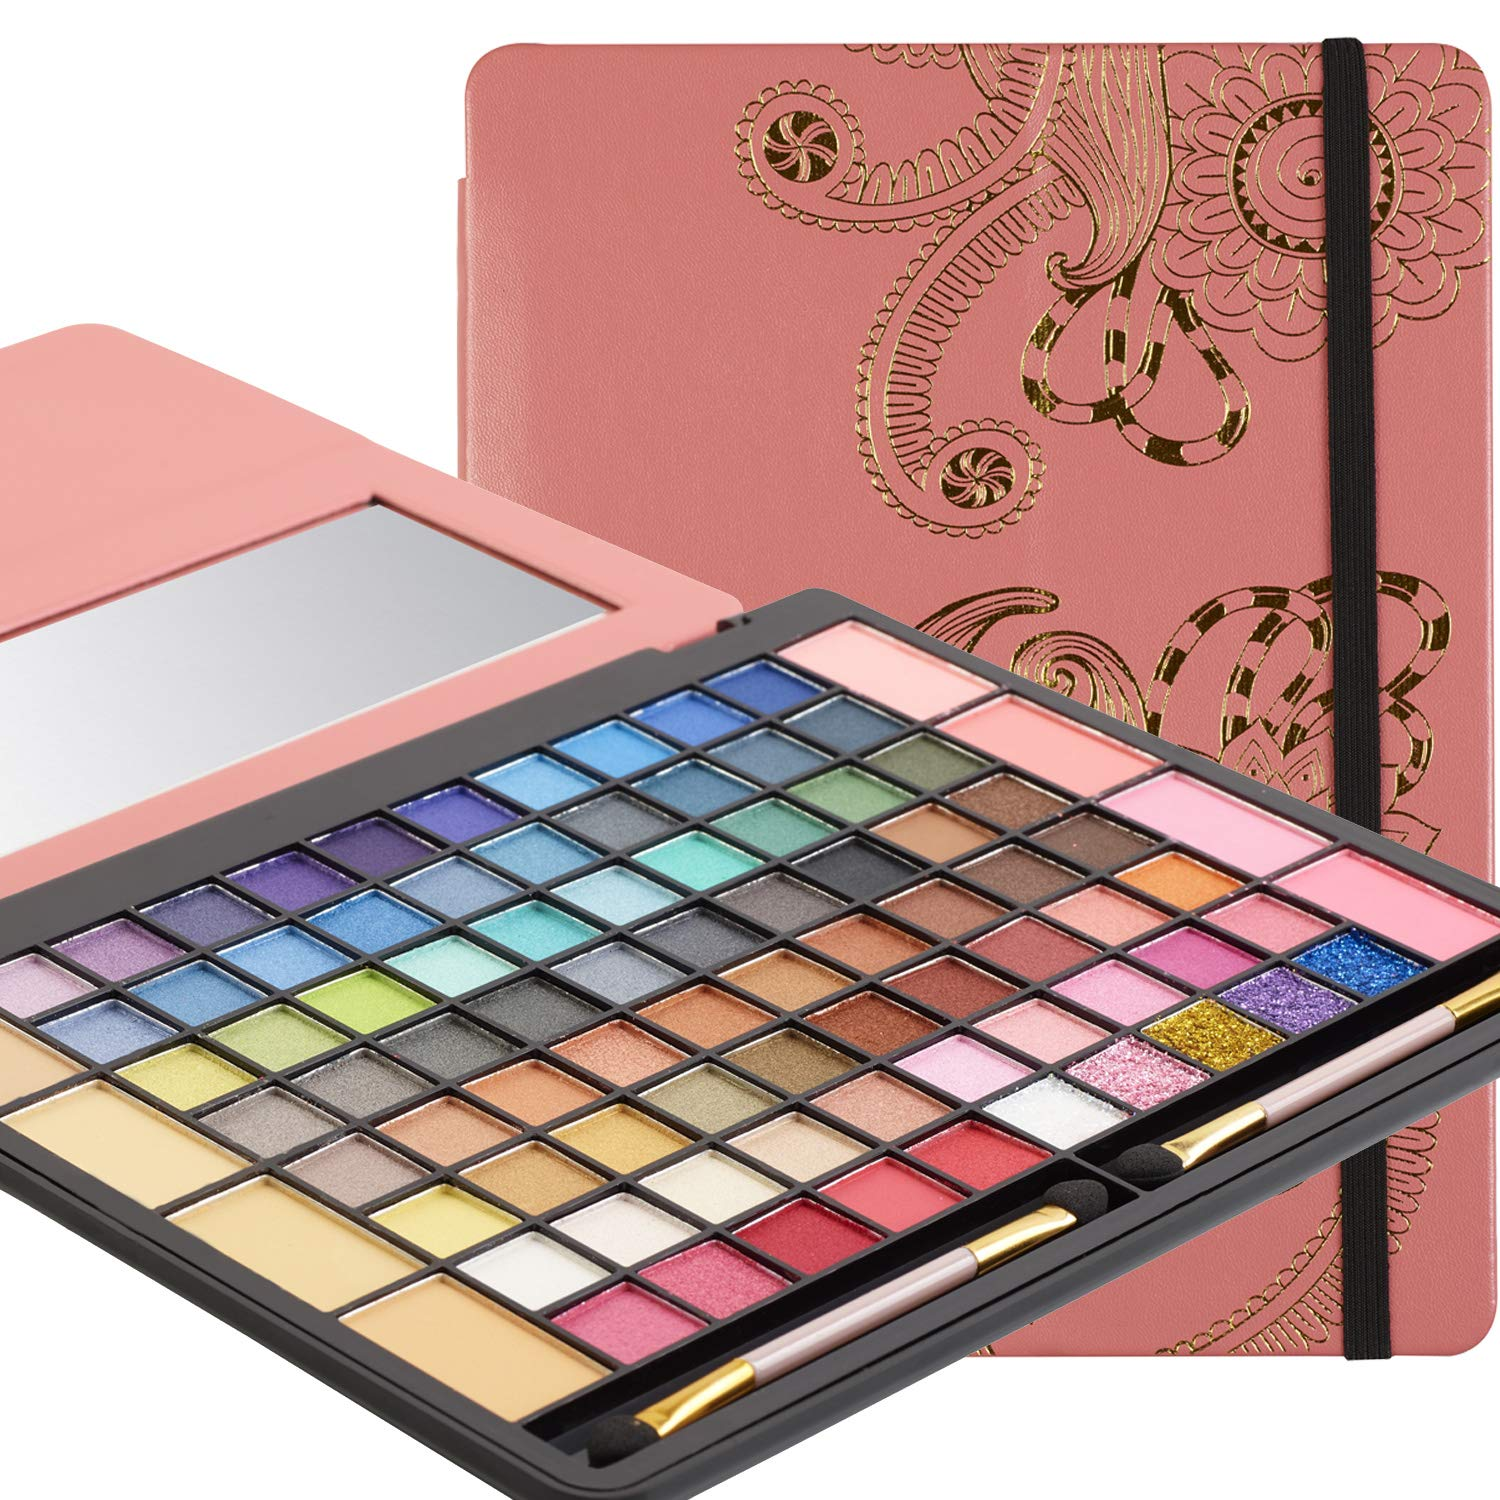 Eyeshadow Palette - Tablet Case Makeup Kits for Teens and Women - Full Starter Kit or Make Up Gift Set for Teen Girls, Beginners or Pros - Variety Shade Array - by Toysical